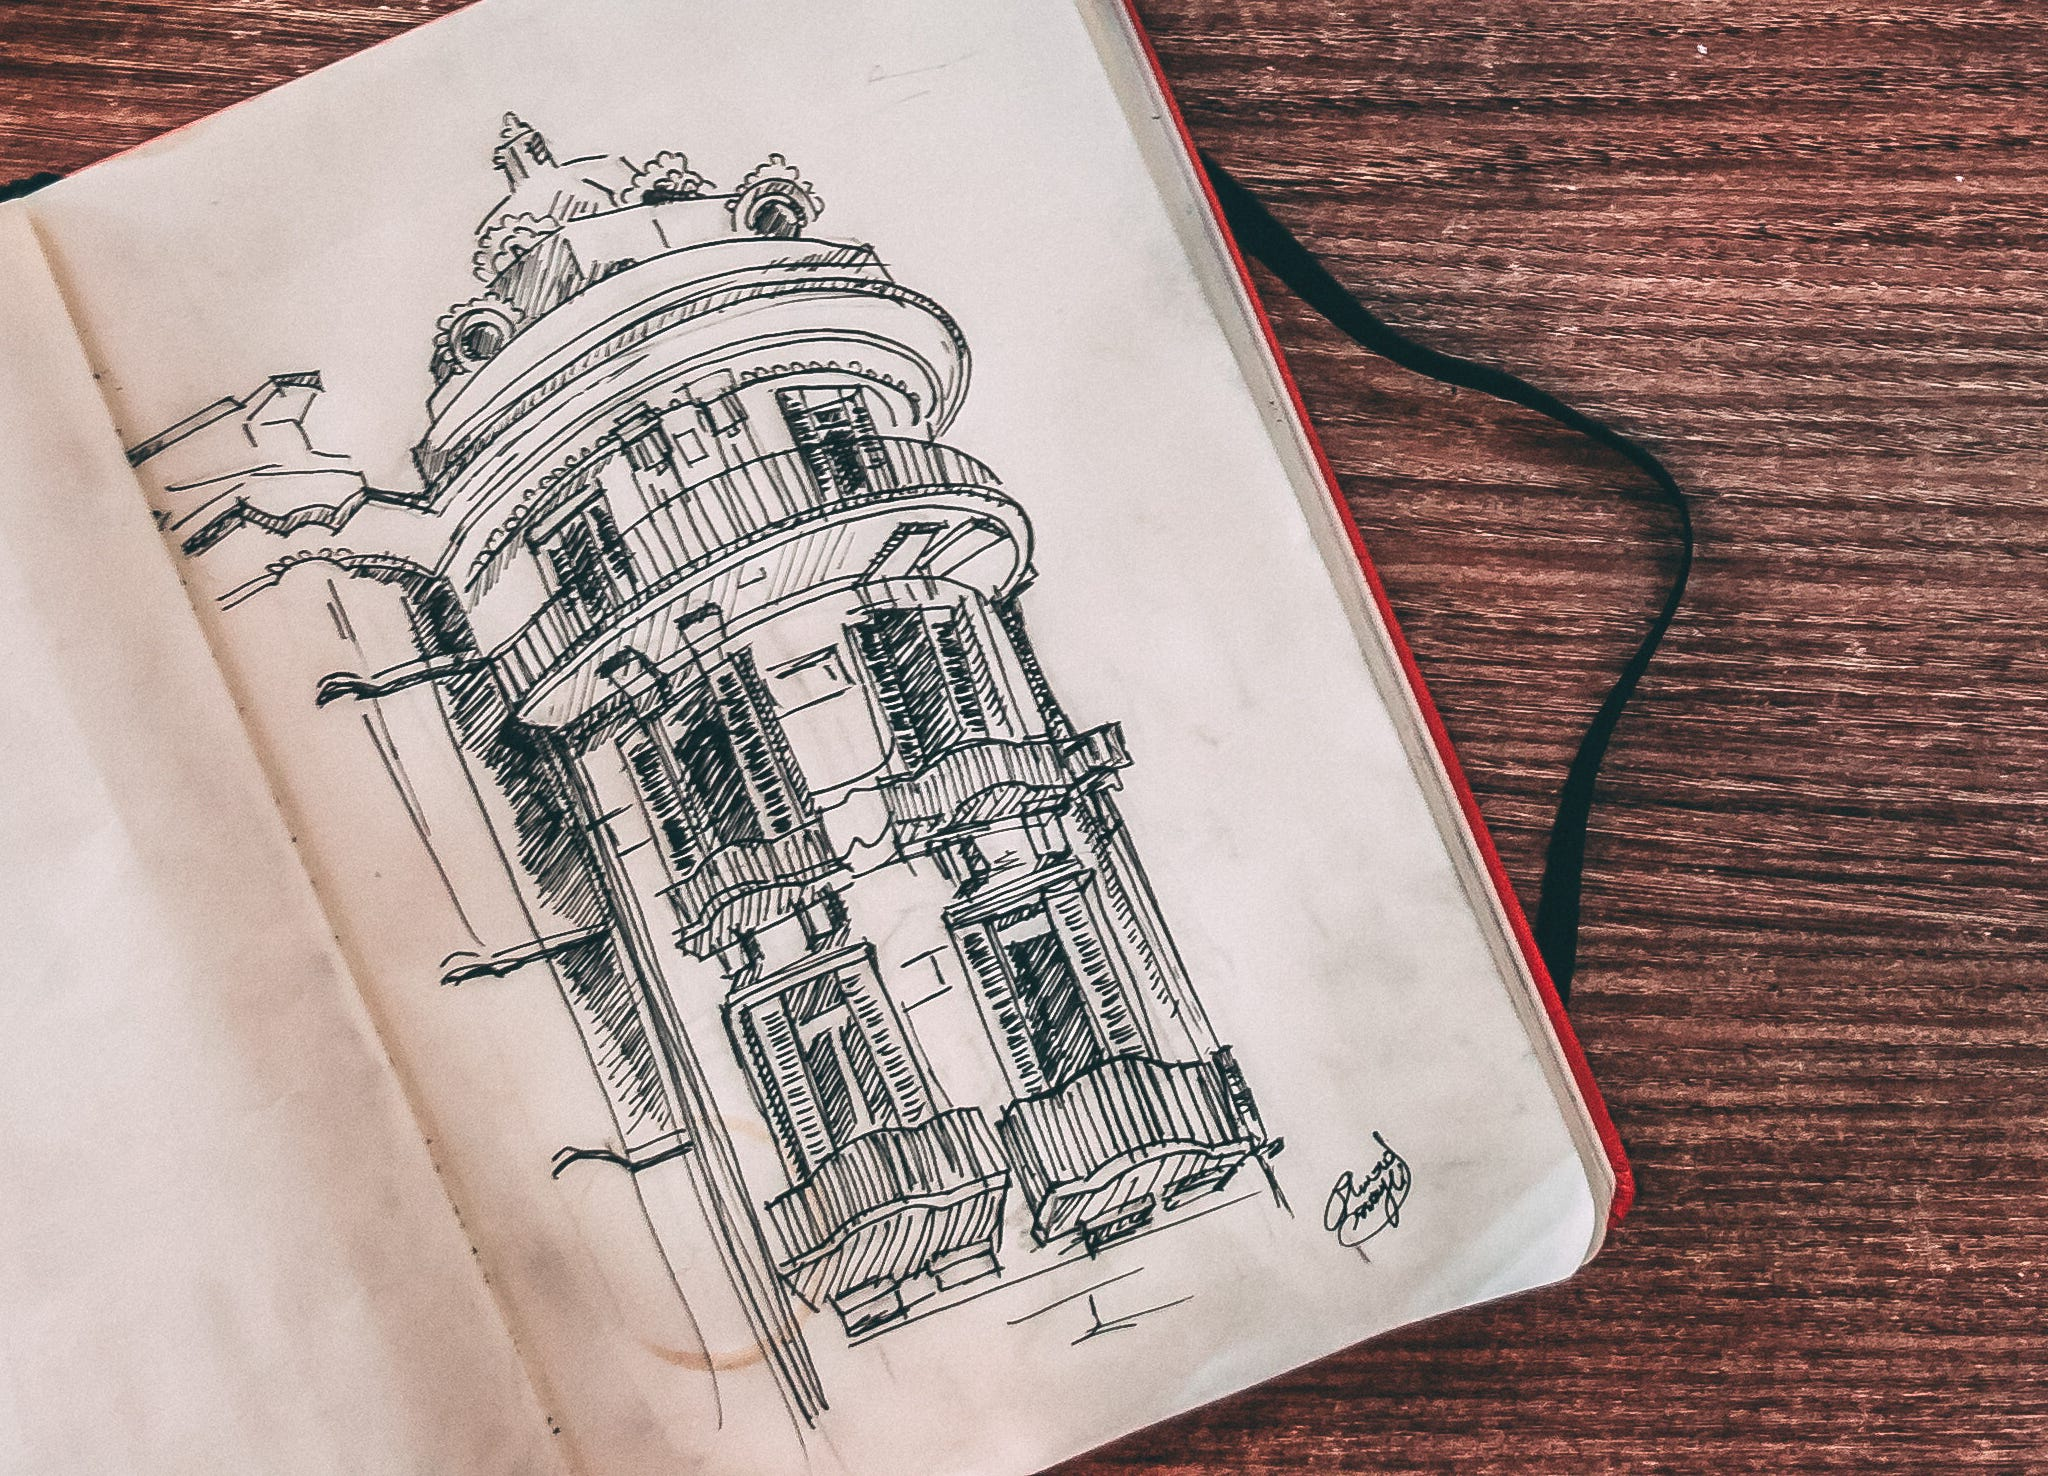 15 drawing ideas that anyone can try image 11